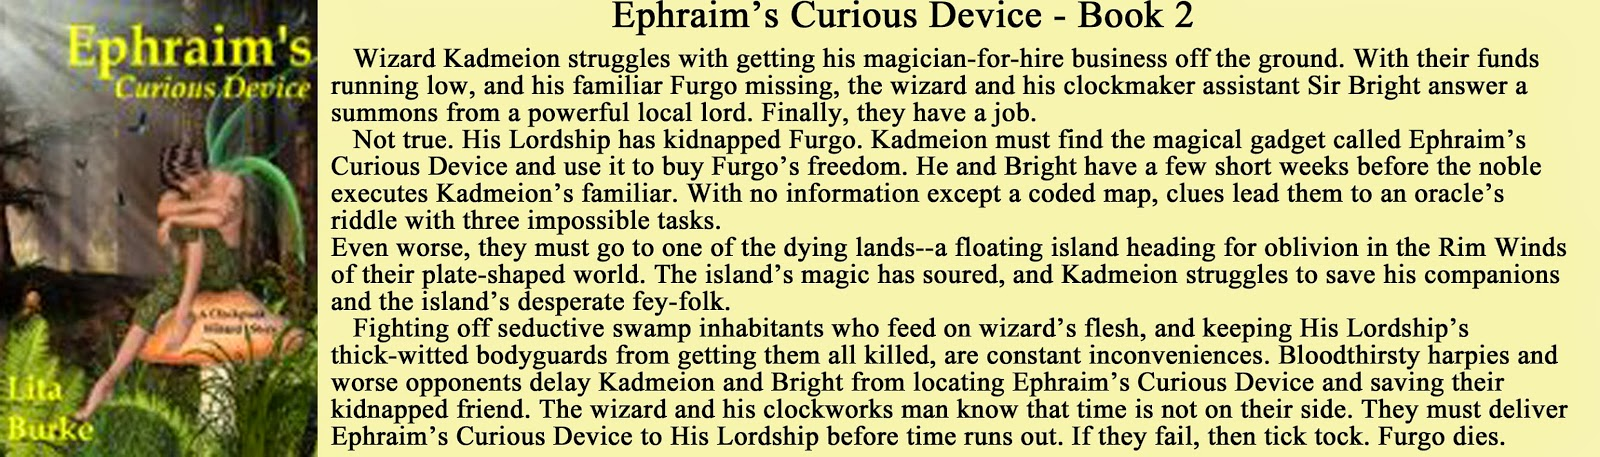 http://www.amazon.com/Ephraims-Curious-Device-Clockpunk-Wizard-ebook/dp/B00ARO6OQS/ref=sr_1_5?ie=UTF8&qid=1408529073&sr=8-5&keywords=lita+burke